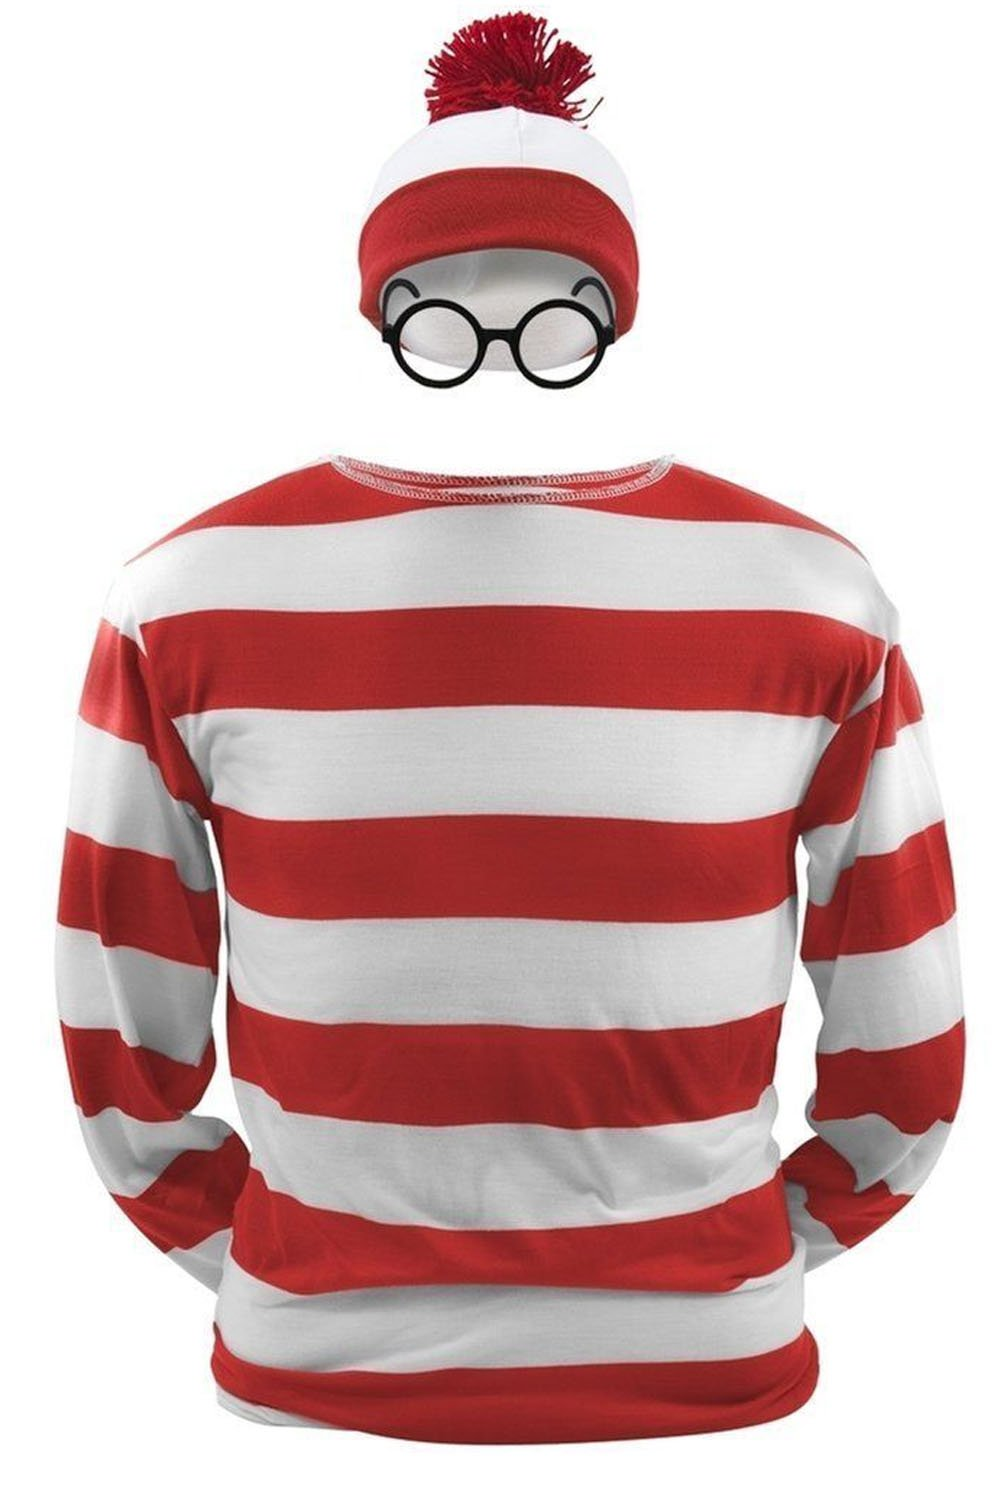 Costhat Where's Waldo Now Costume Adult Funny Sweatshirt Hoodie Outfit Glasses Hat Cap Suits (XX-Large, Male)